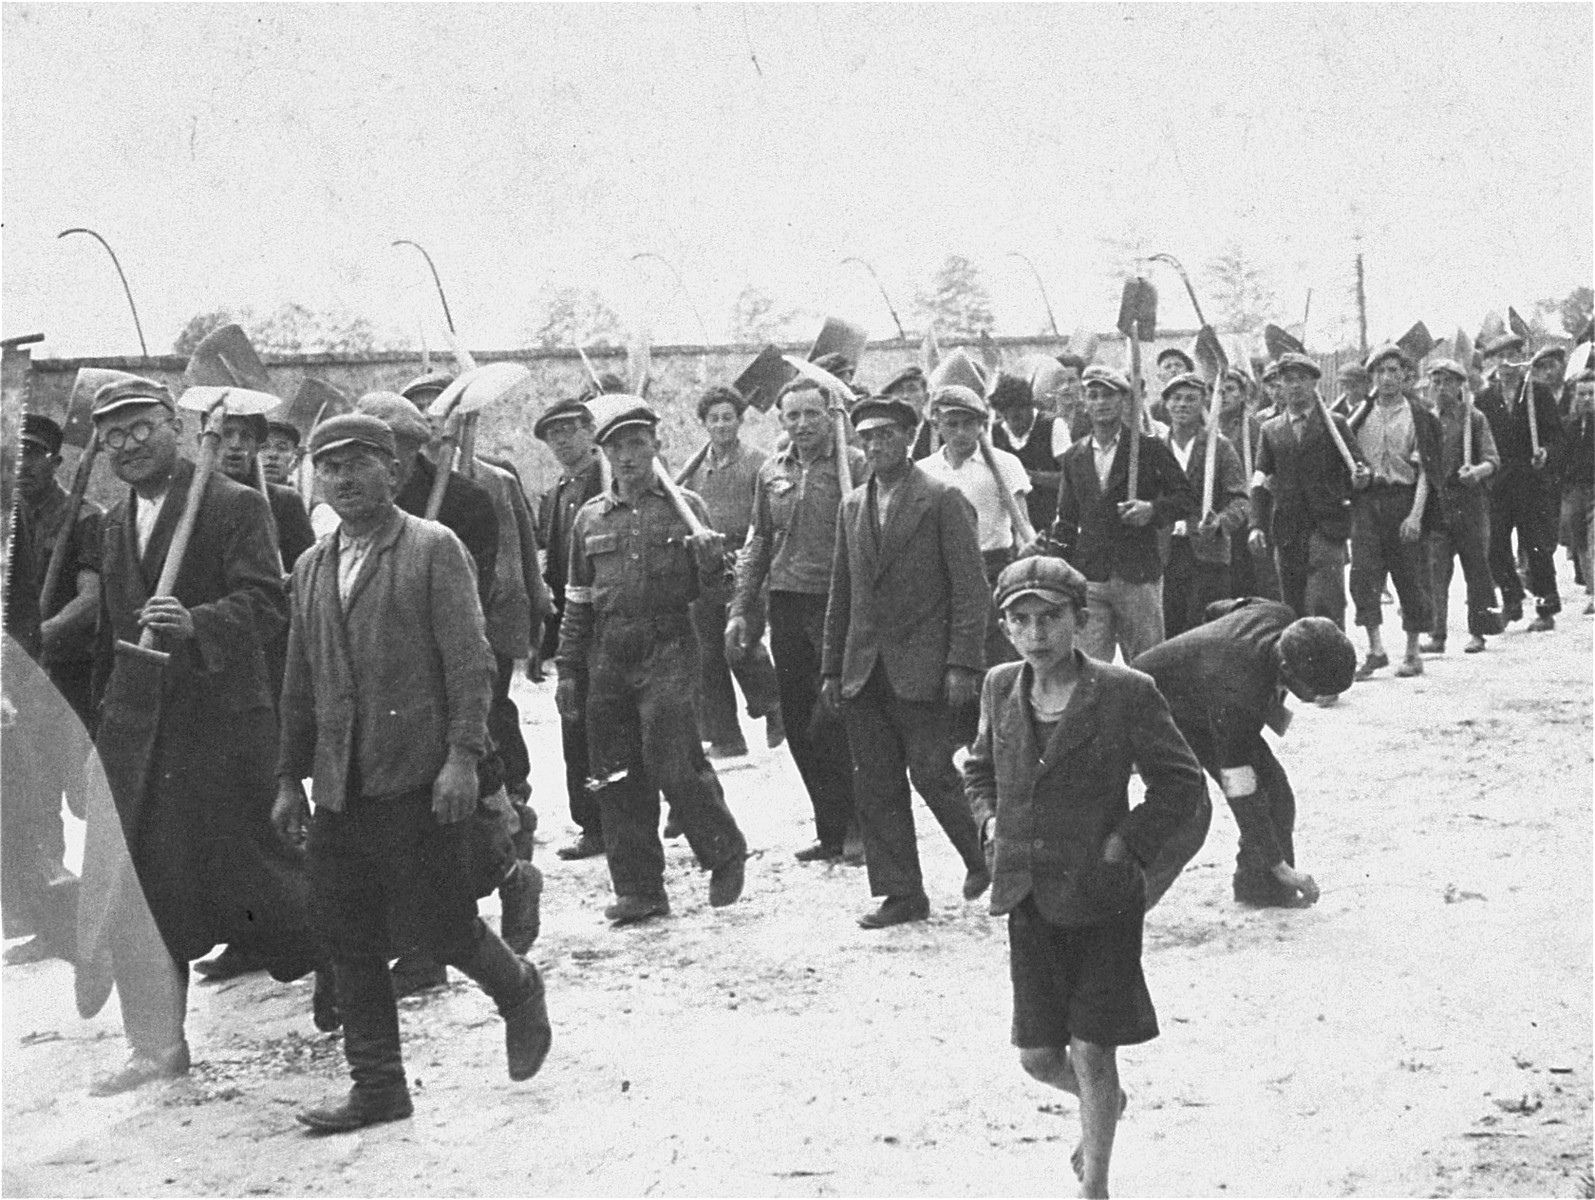 A group of Jewish men and youth from Zarki march to a forced labor site carrying shovels.